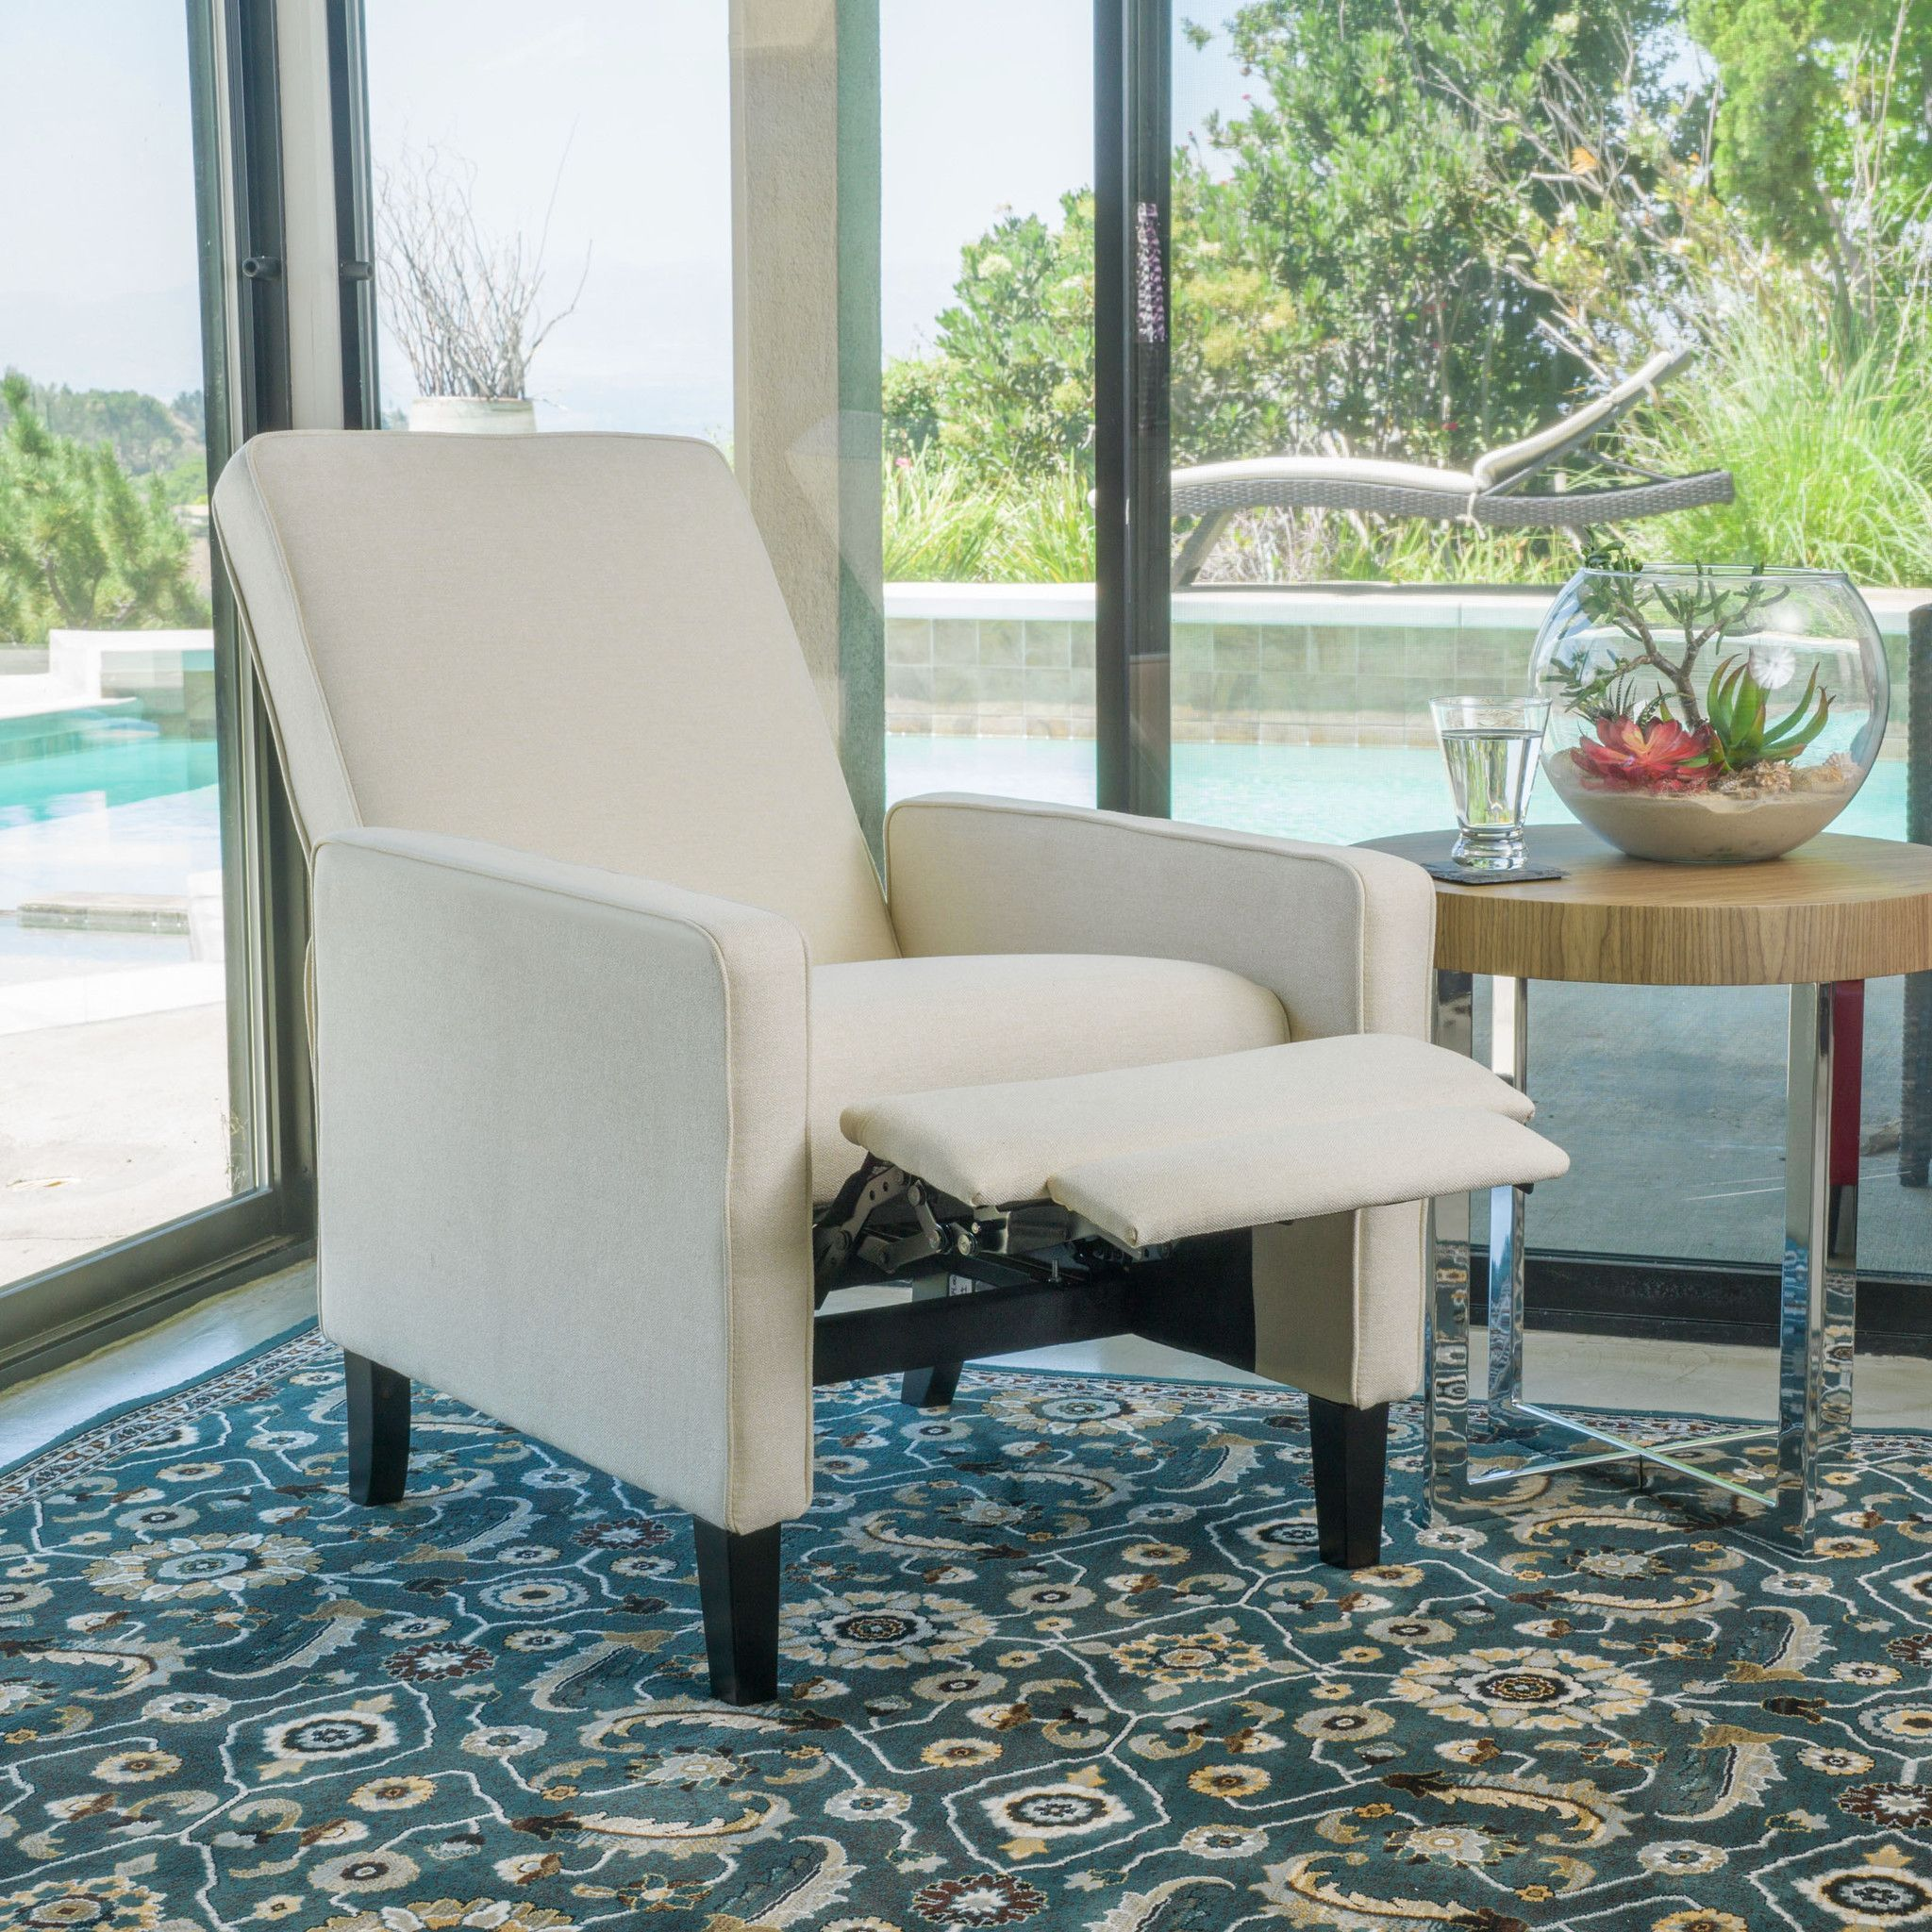 Gentil Relax In Style With This Recliner Club Chair Featuring A Solid Frame And  Sturdy Feet For